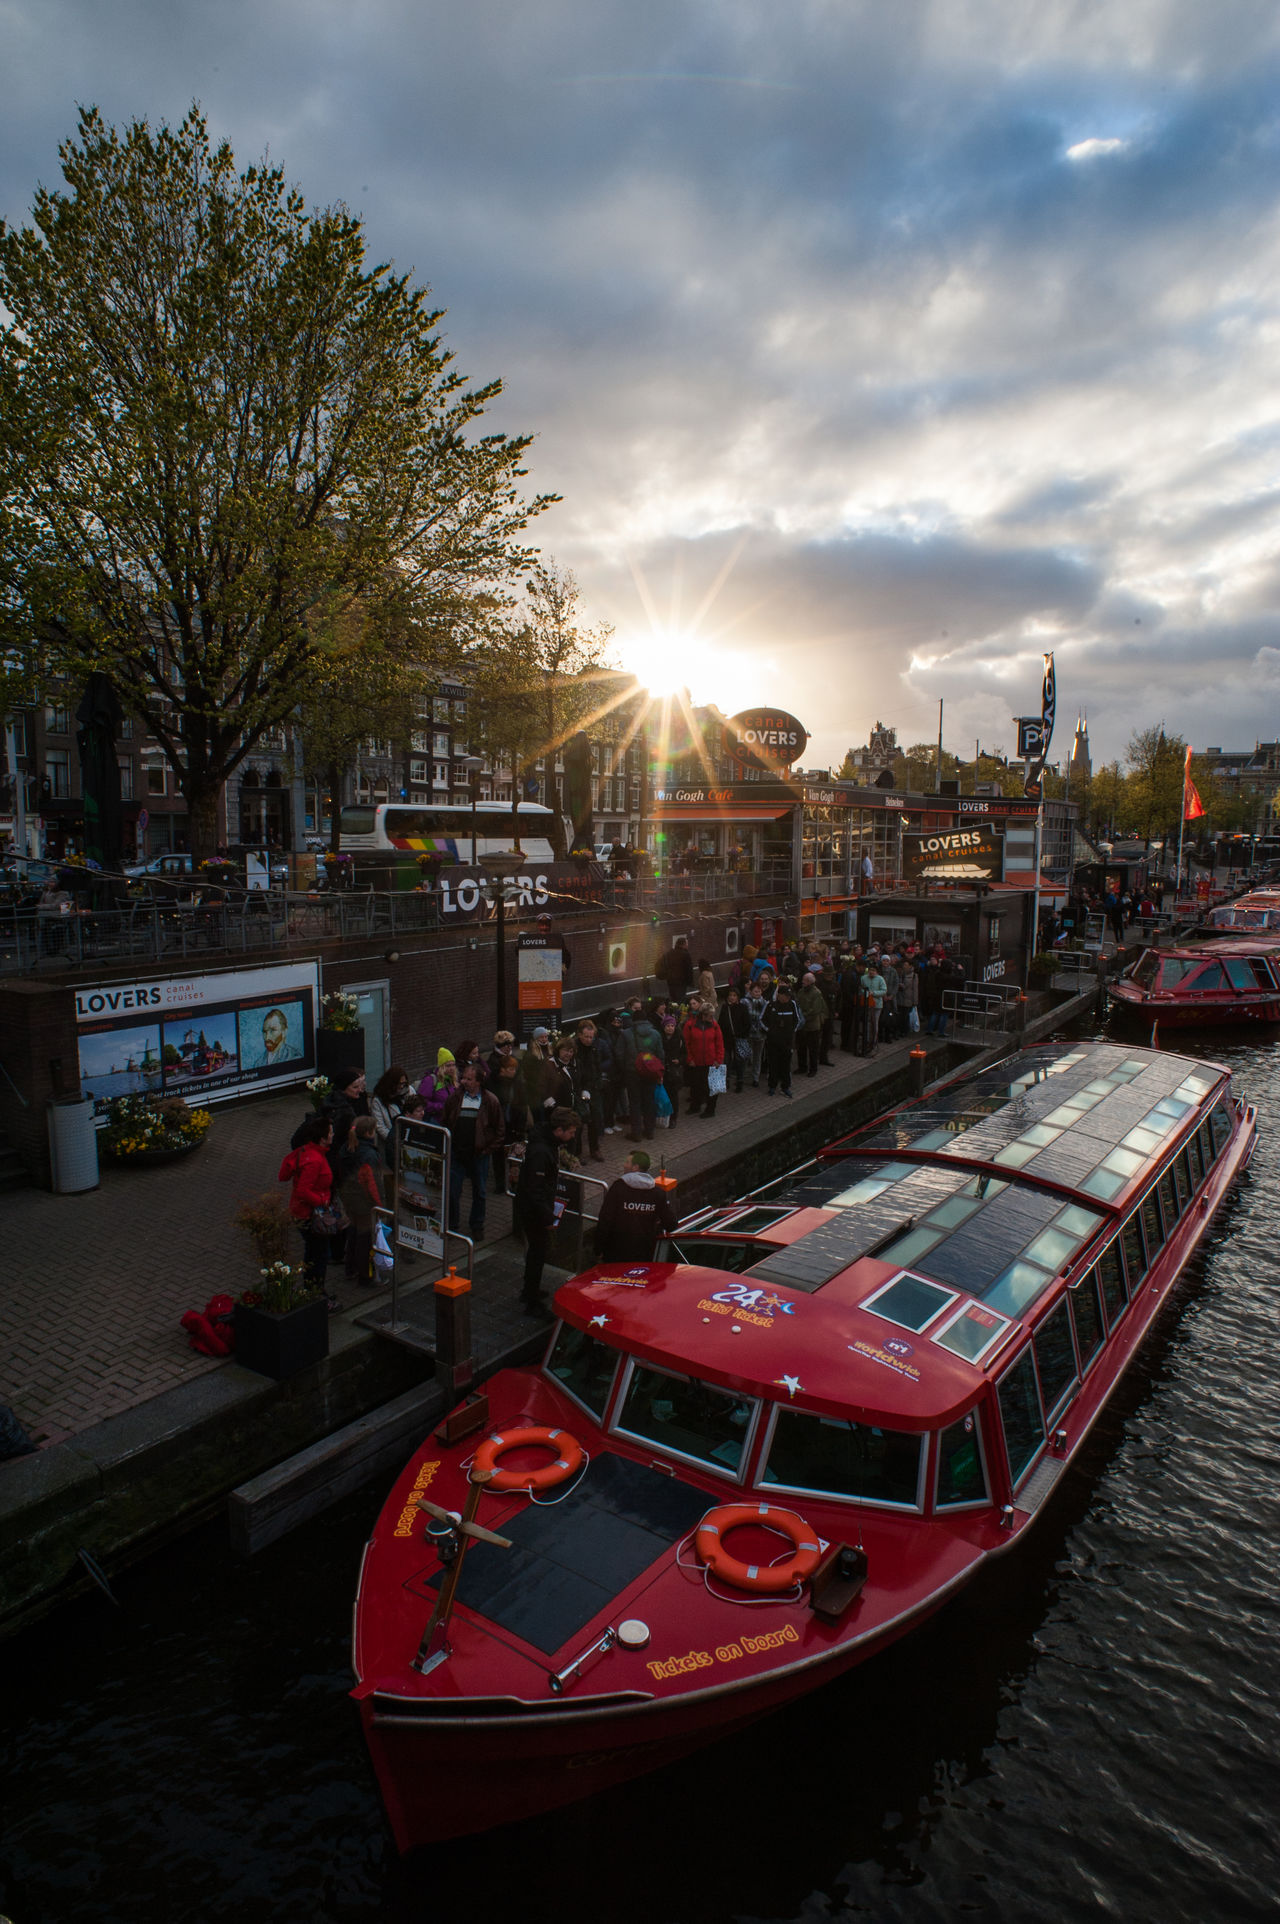 Boat and sunset Amsterdam Architecture Boat Building Exterior Built Structure City Cloud - Sky Day Lovers Mode Of Transport Nautical Vessel Outdoors Rondvaartboot Sky Sunset Transportation Tree Water